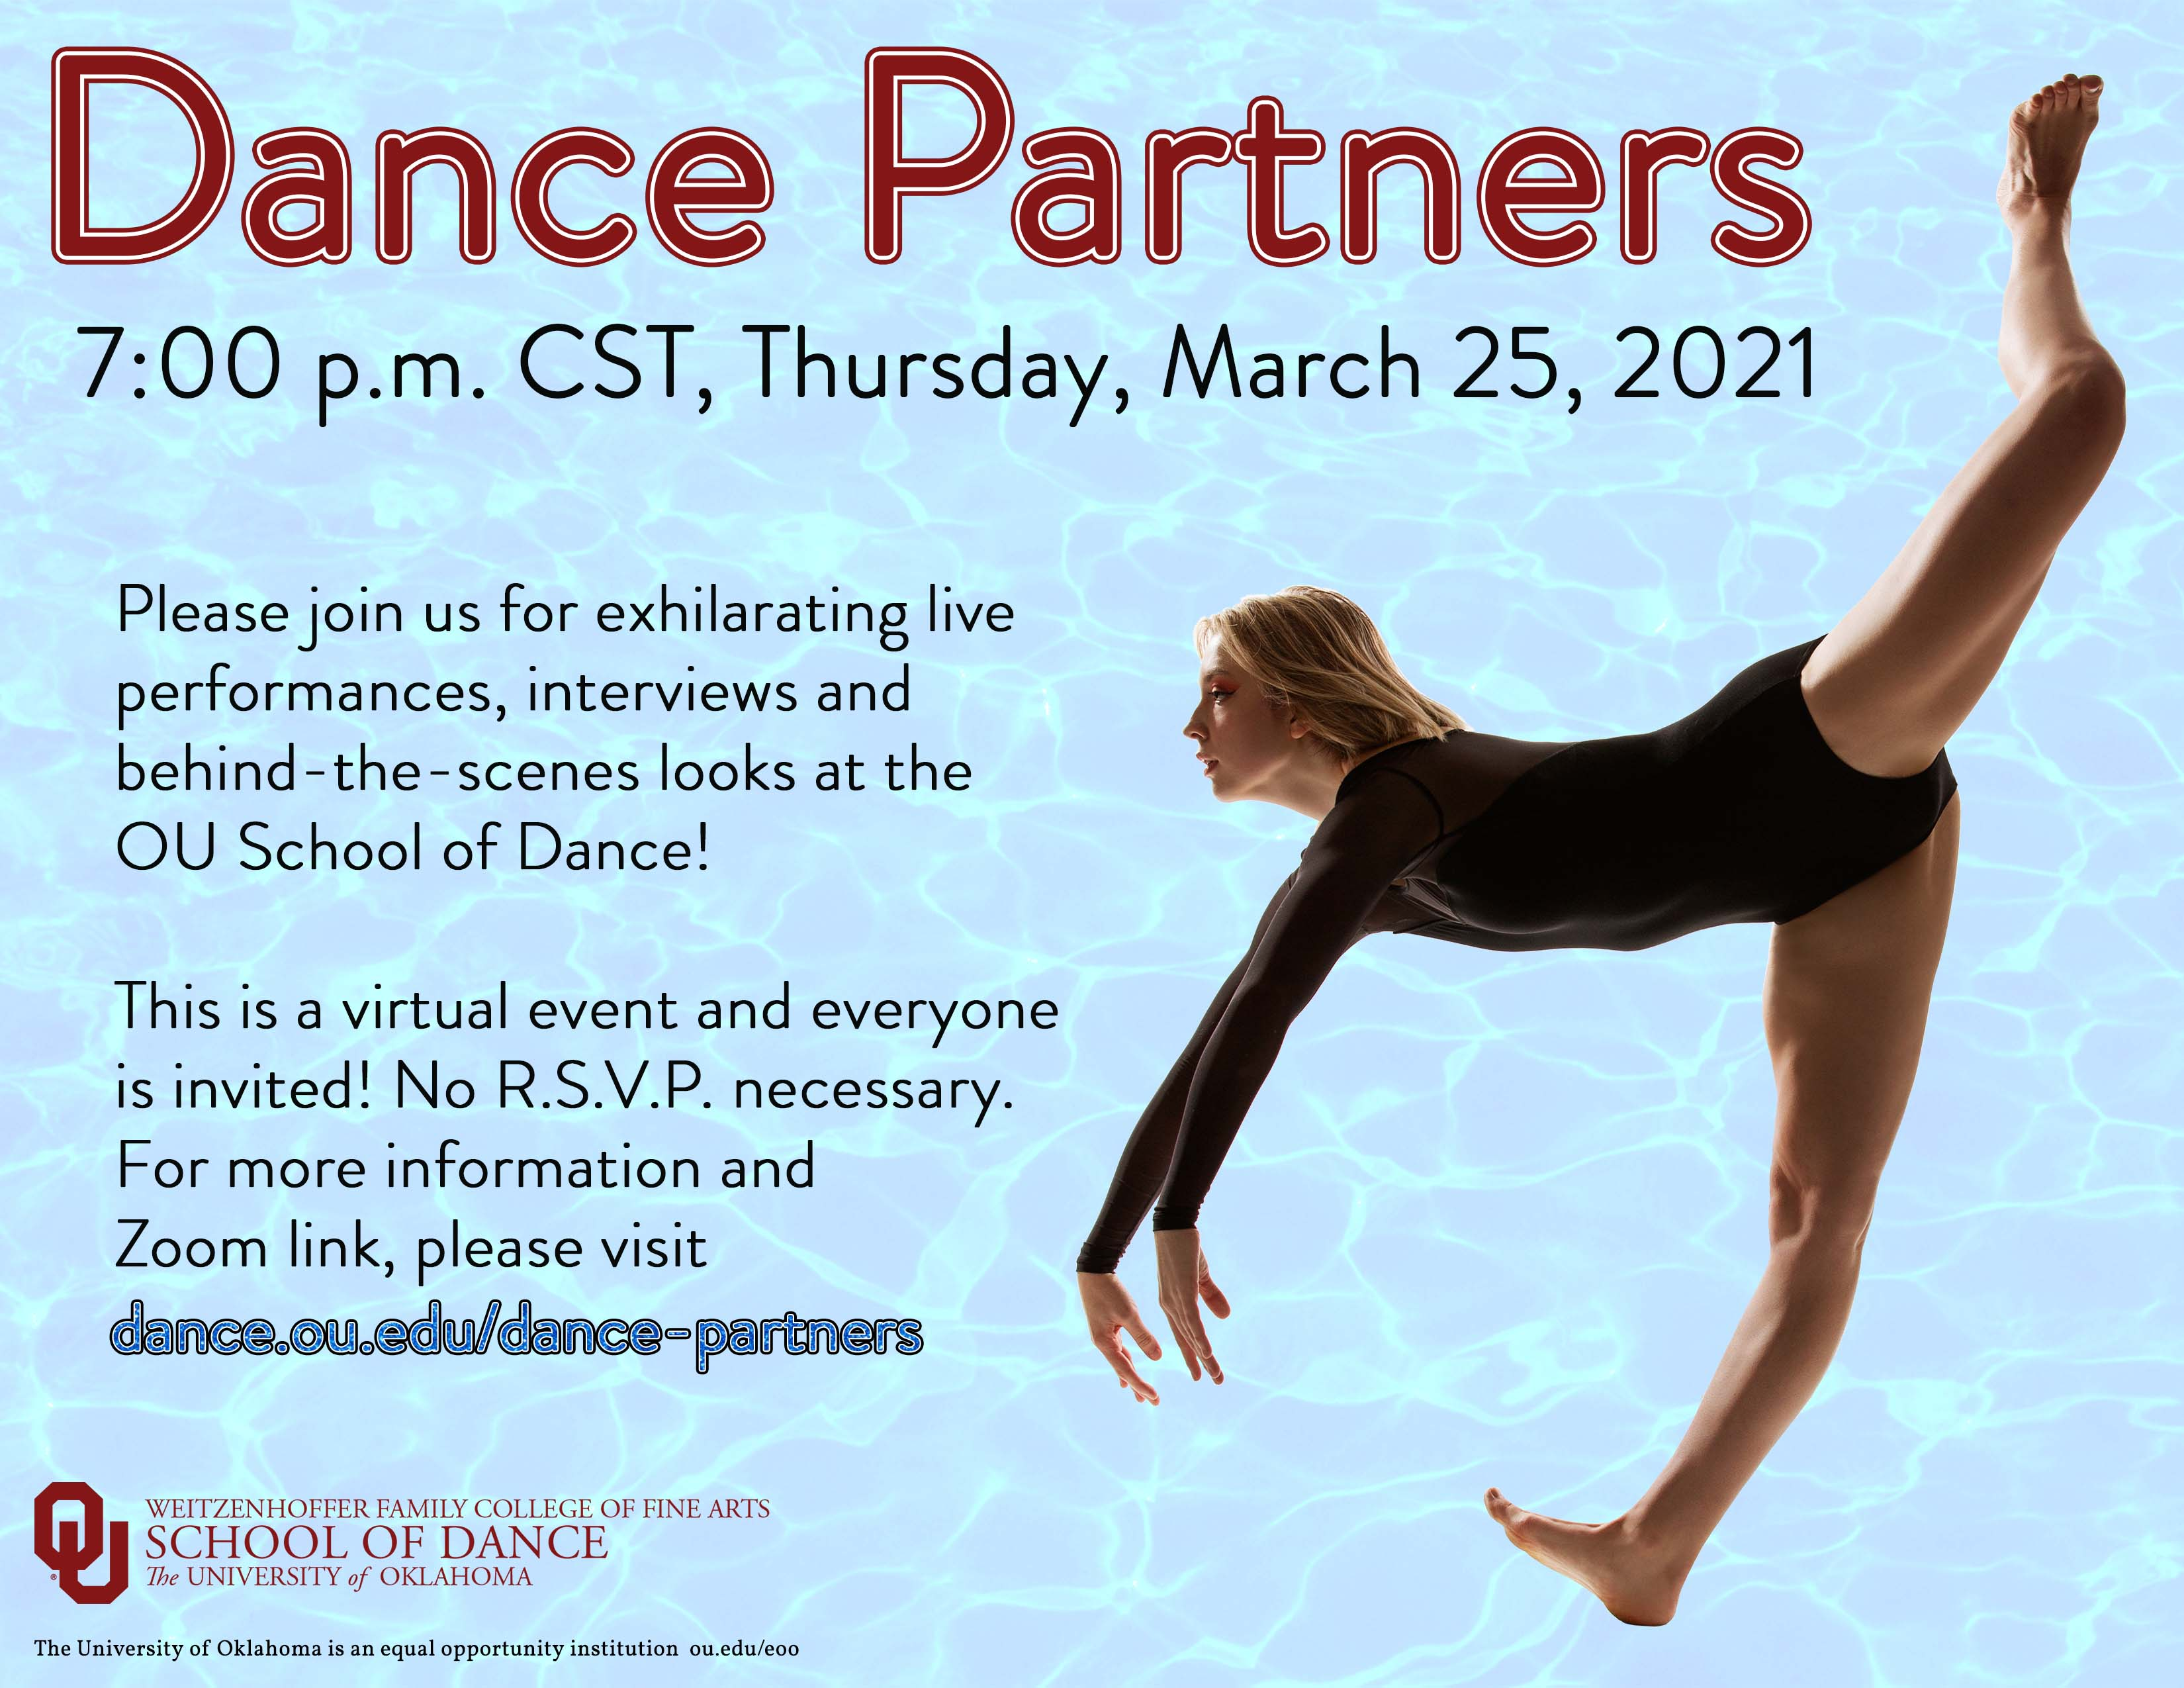 Dance Partners Event Flyer